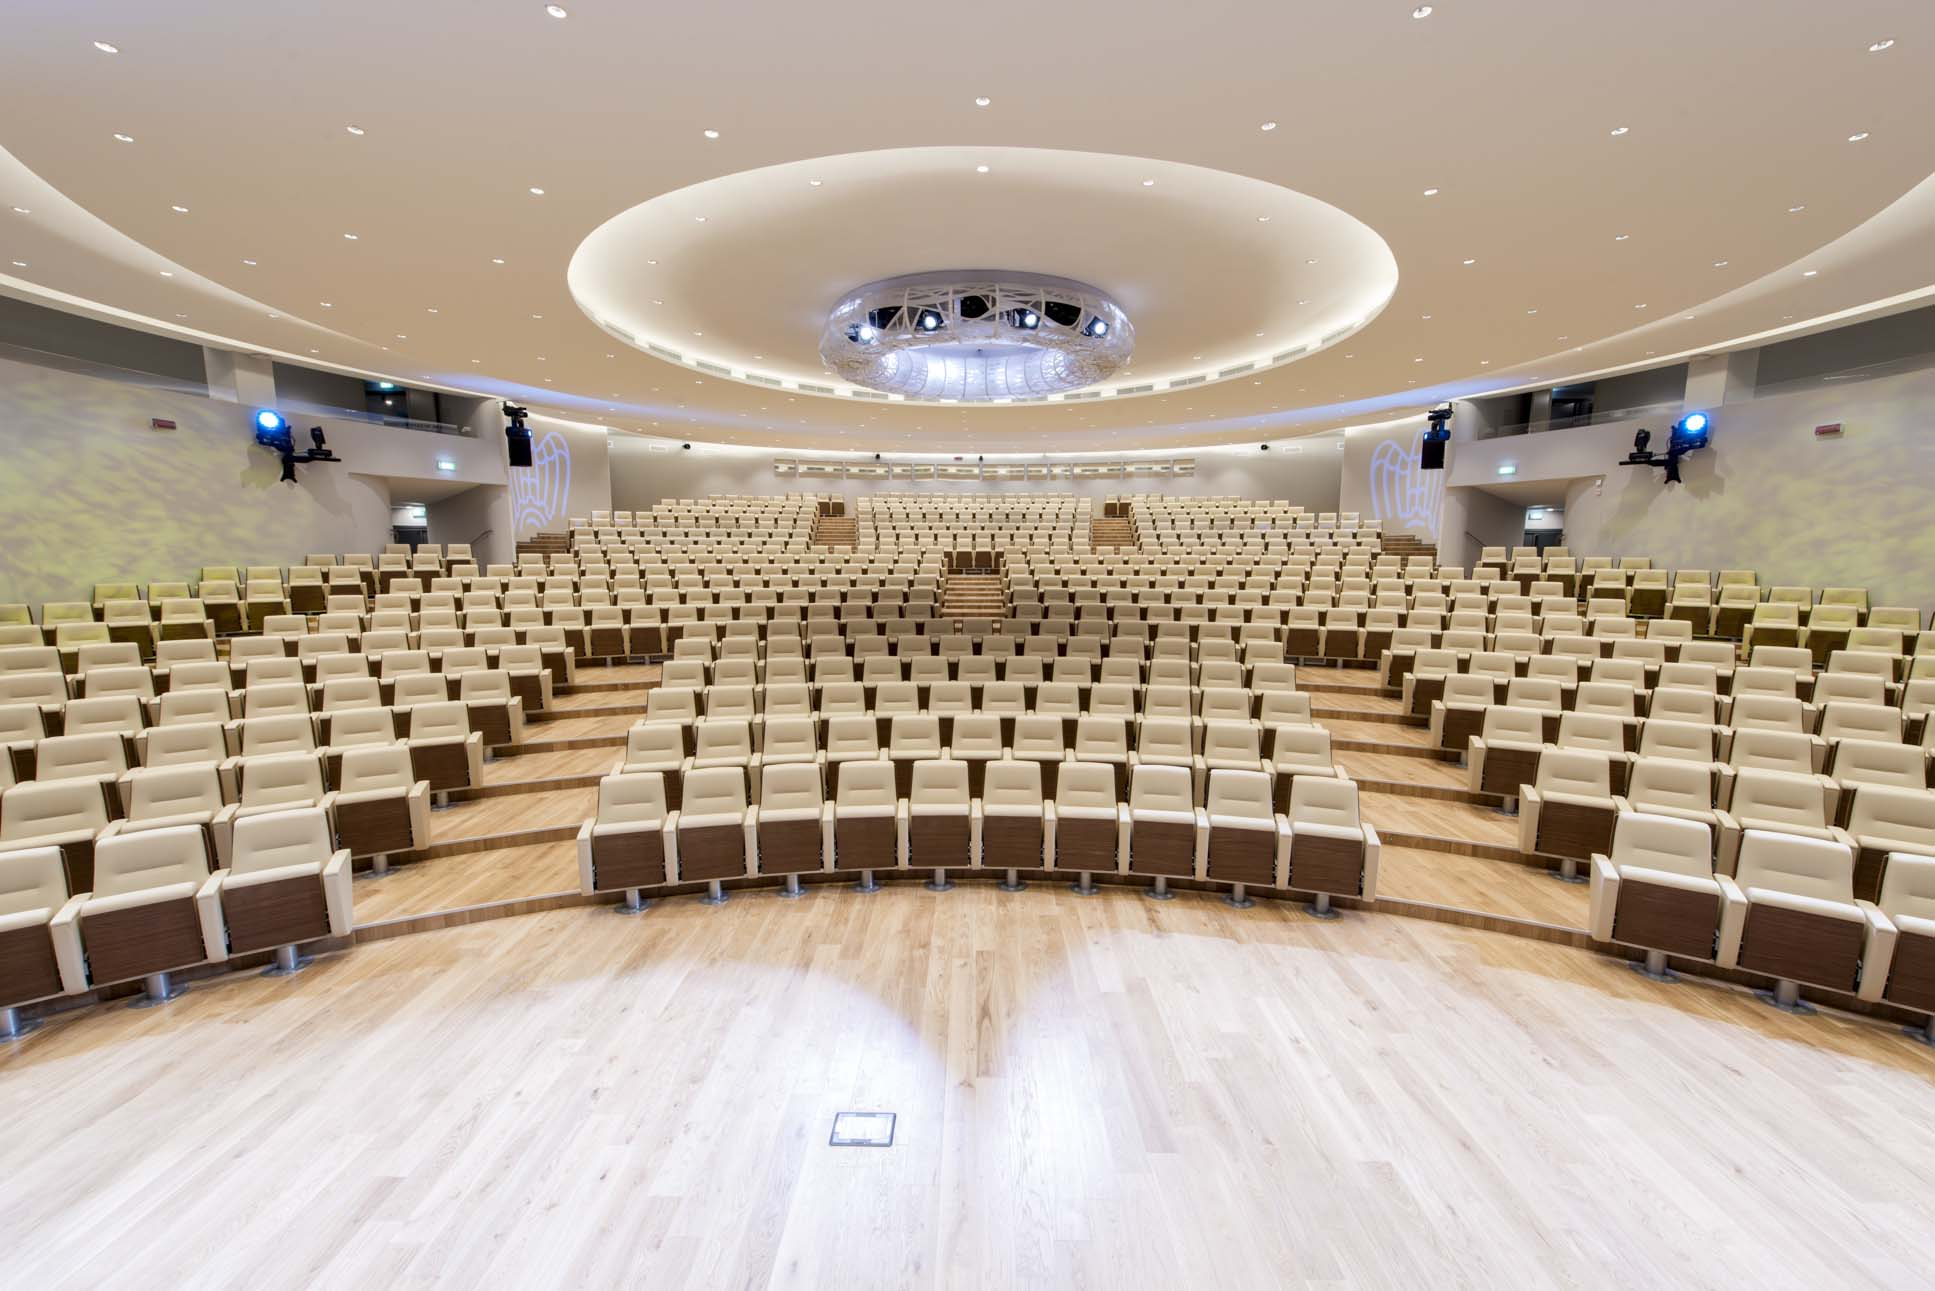 Theaters and Congress Halls